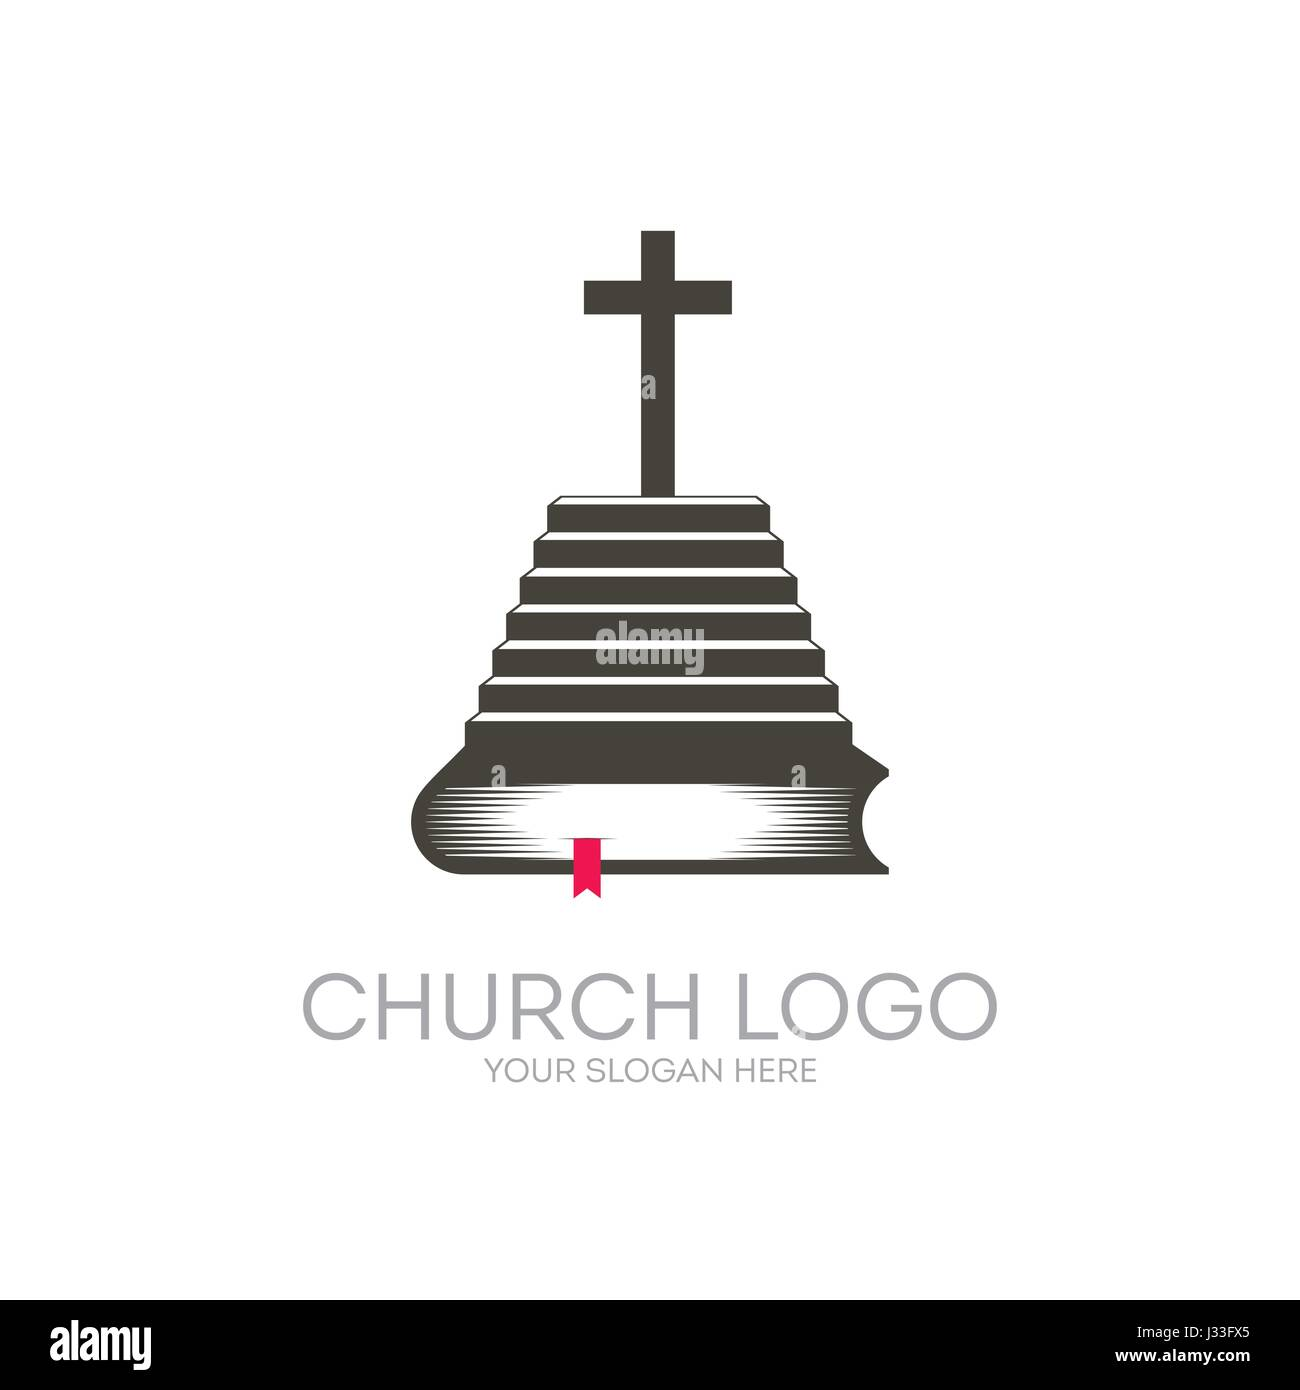 Church logo christian symbols bible scripture is a staircase christian symbols bible scripture is a staircase leading to the knowledge of the lord and savior jesus christ buycottarizona Images